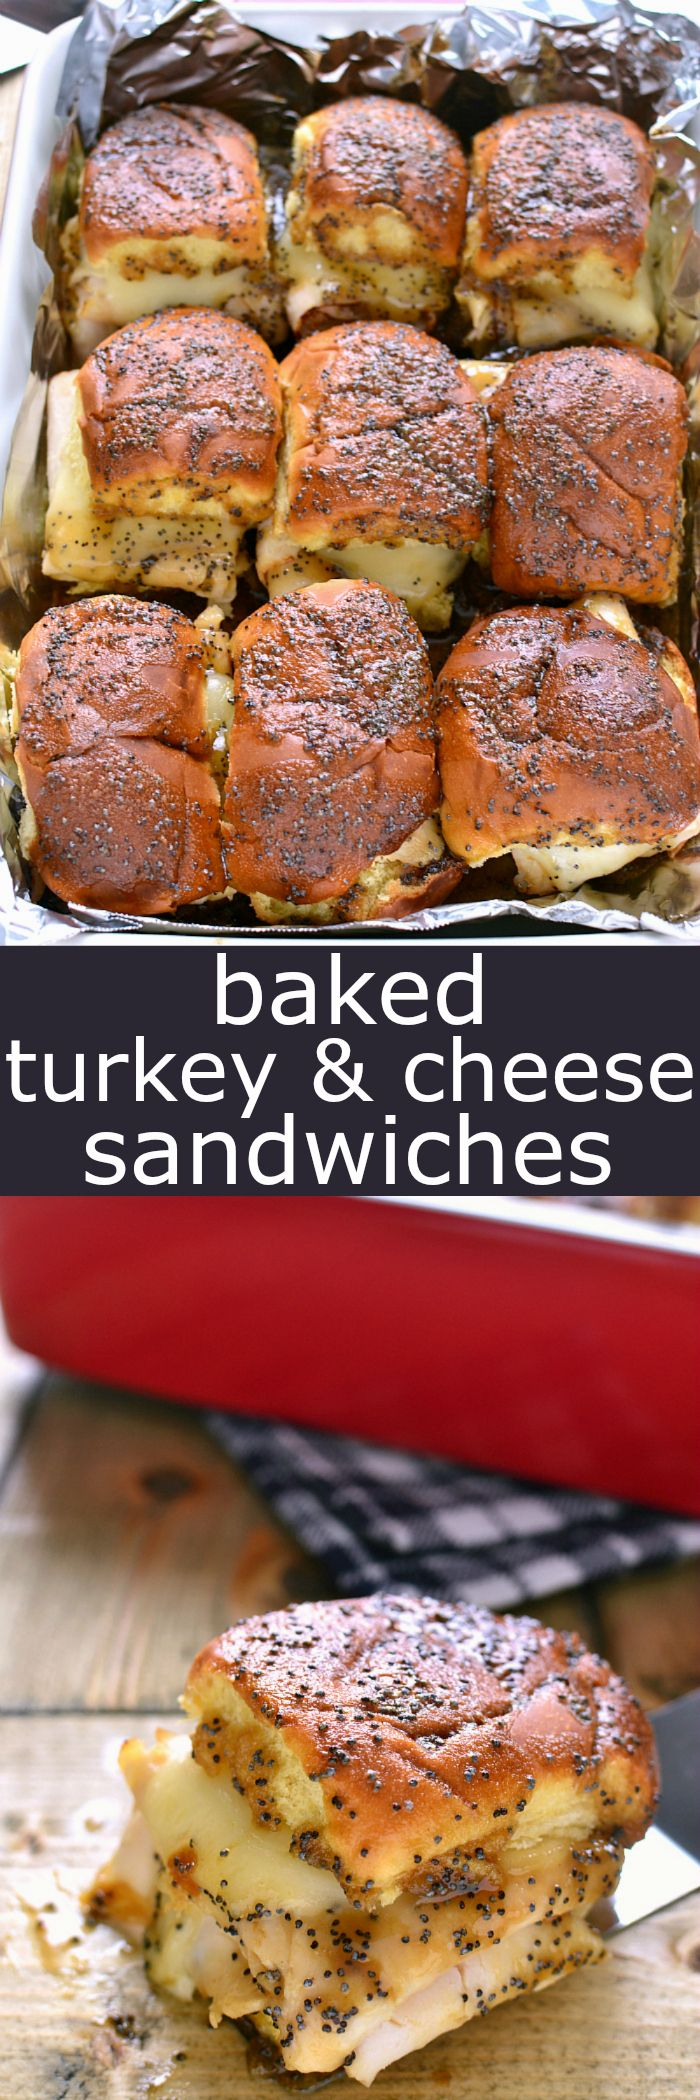 These Baked Turkey & Cheese Sandwiches are a family favorite! Make them ahead for game day, dinner, or your next party!: